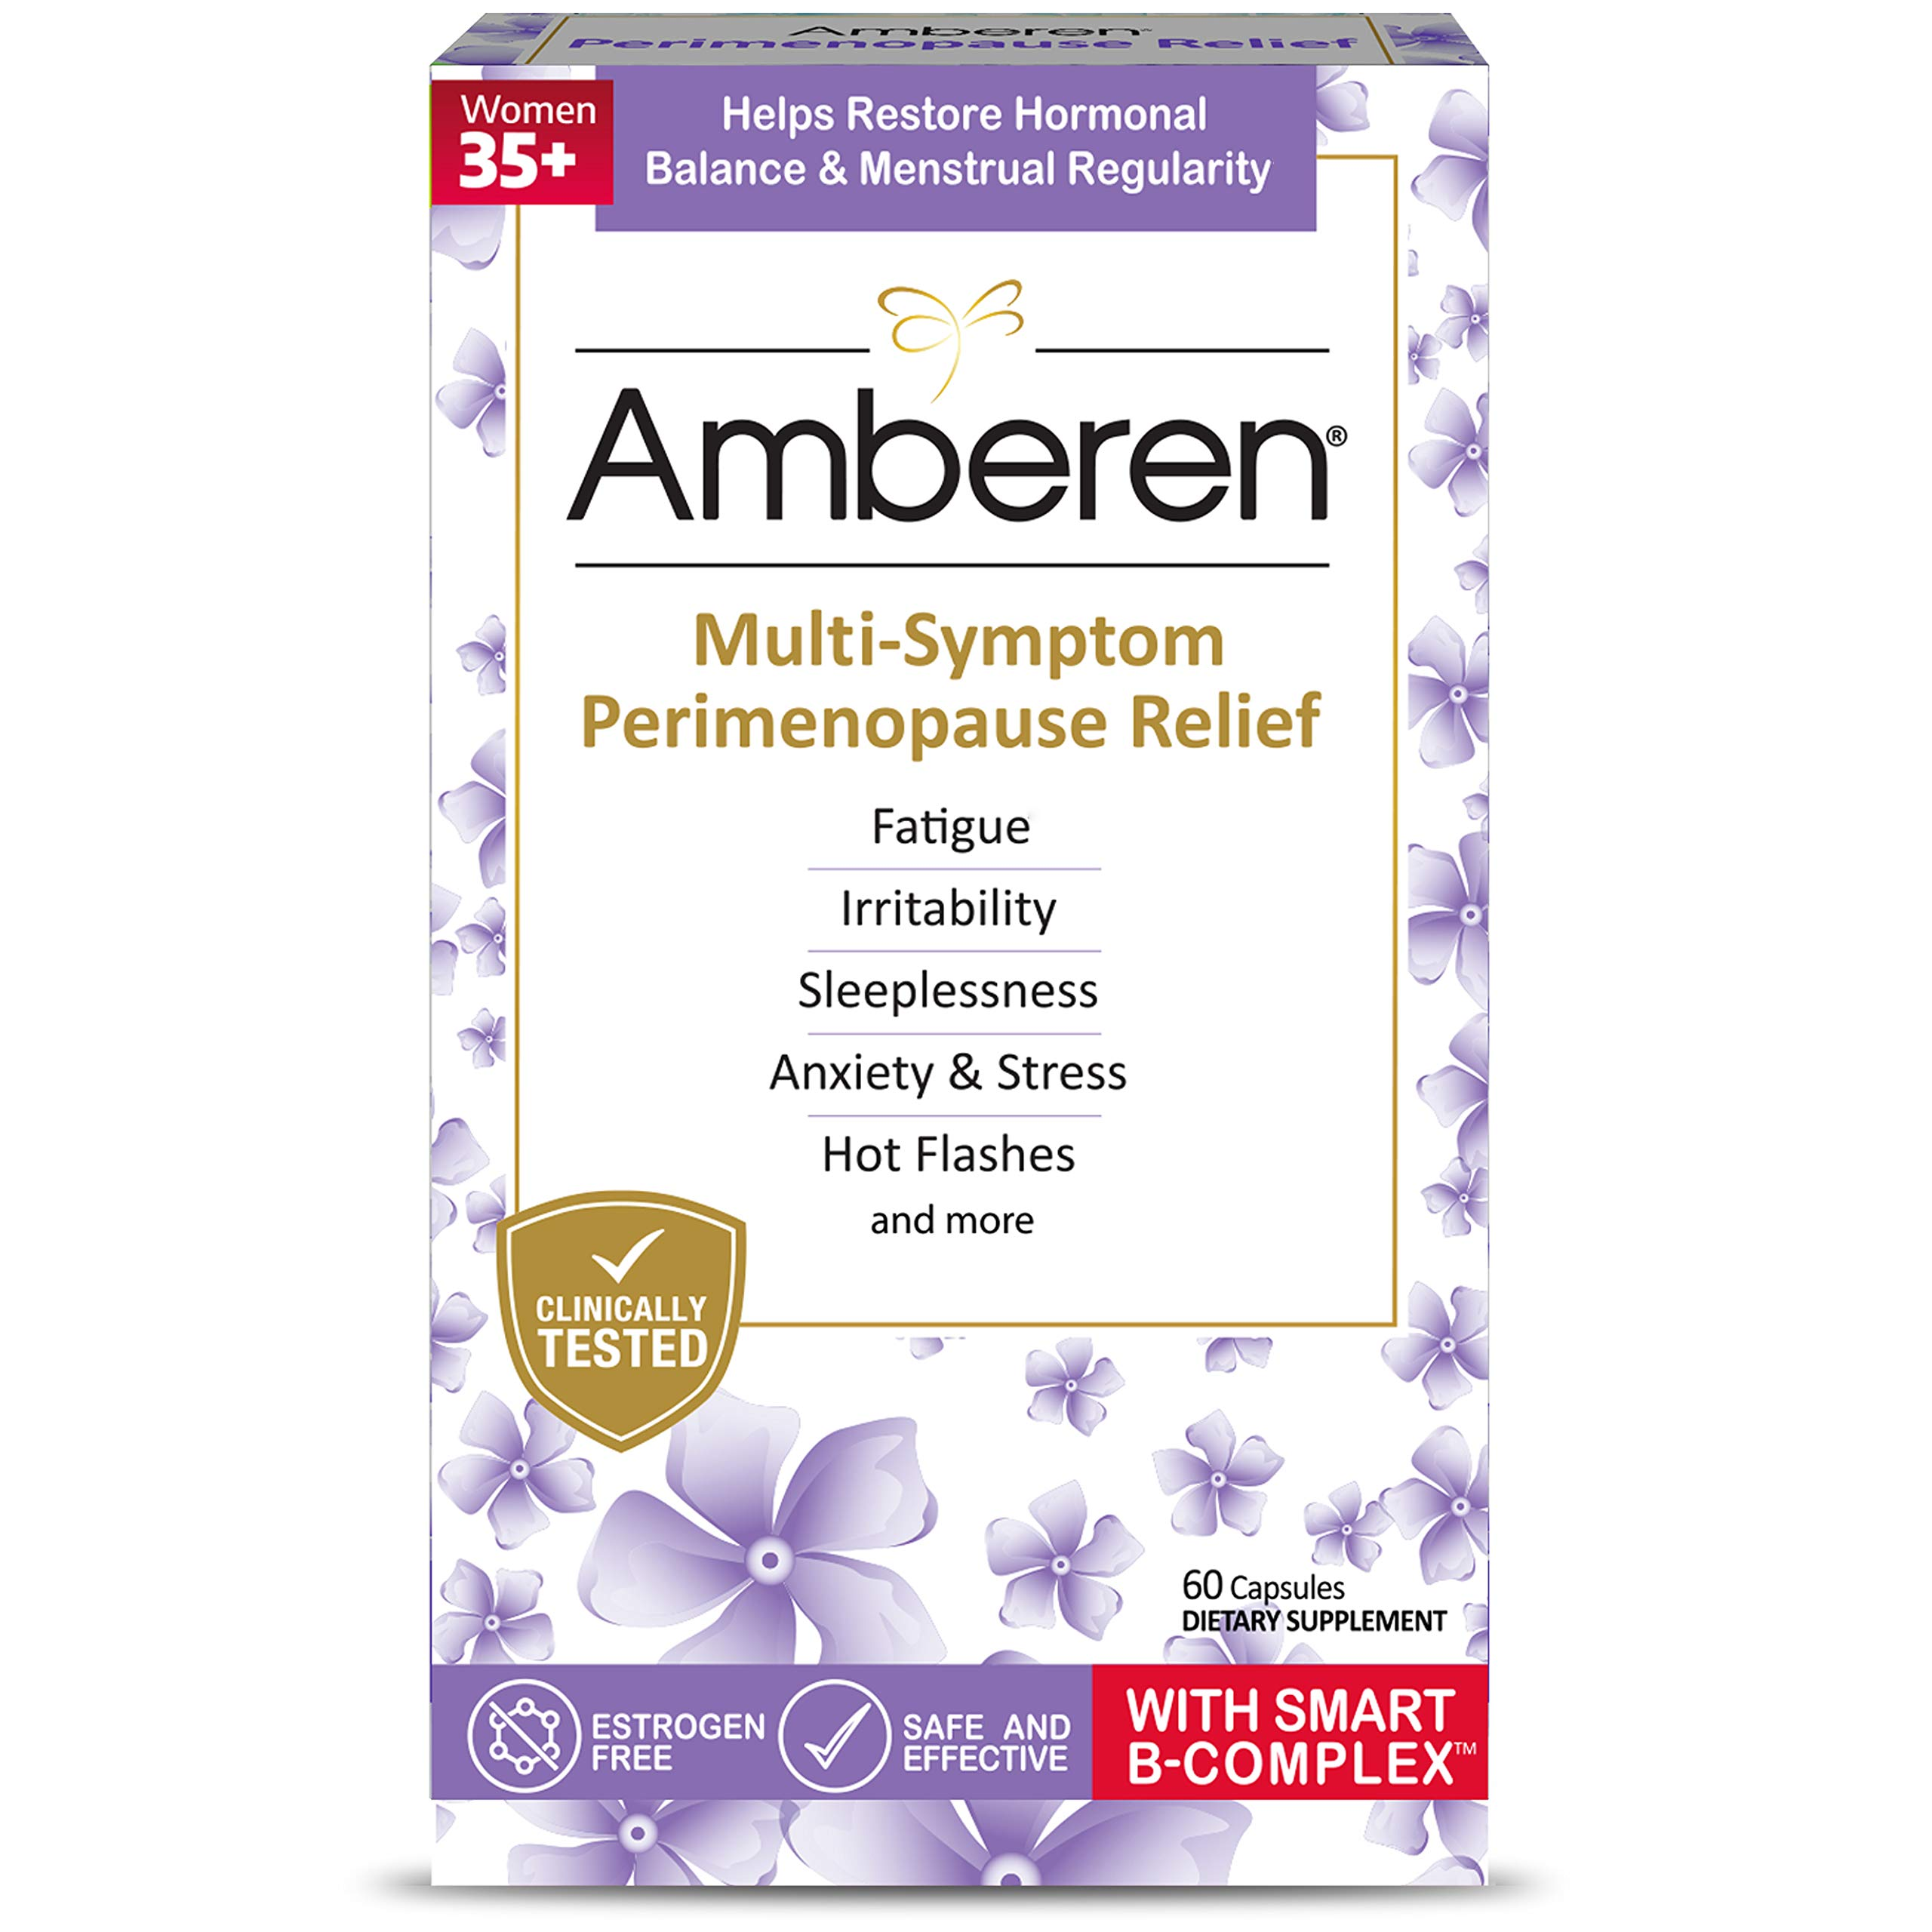 Amberen Peri: Safe Multi-Symptom Perimenopause Relief | Helps Restore Menstrual Regularity & Hormonal Balance | Relieves Fatigue, Stress, Hot Flashes, Anxiety & More - 1 Month Supply